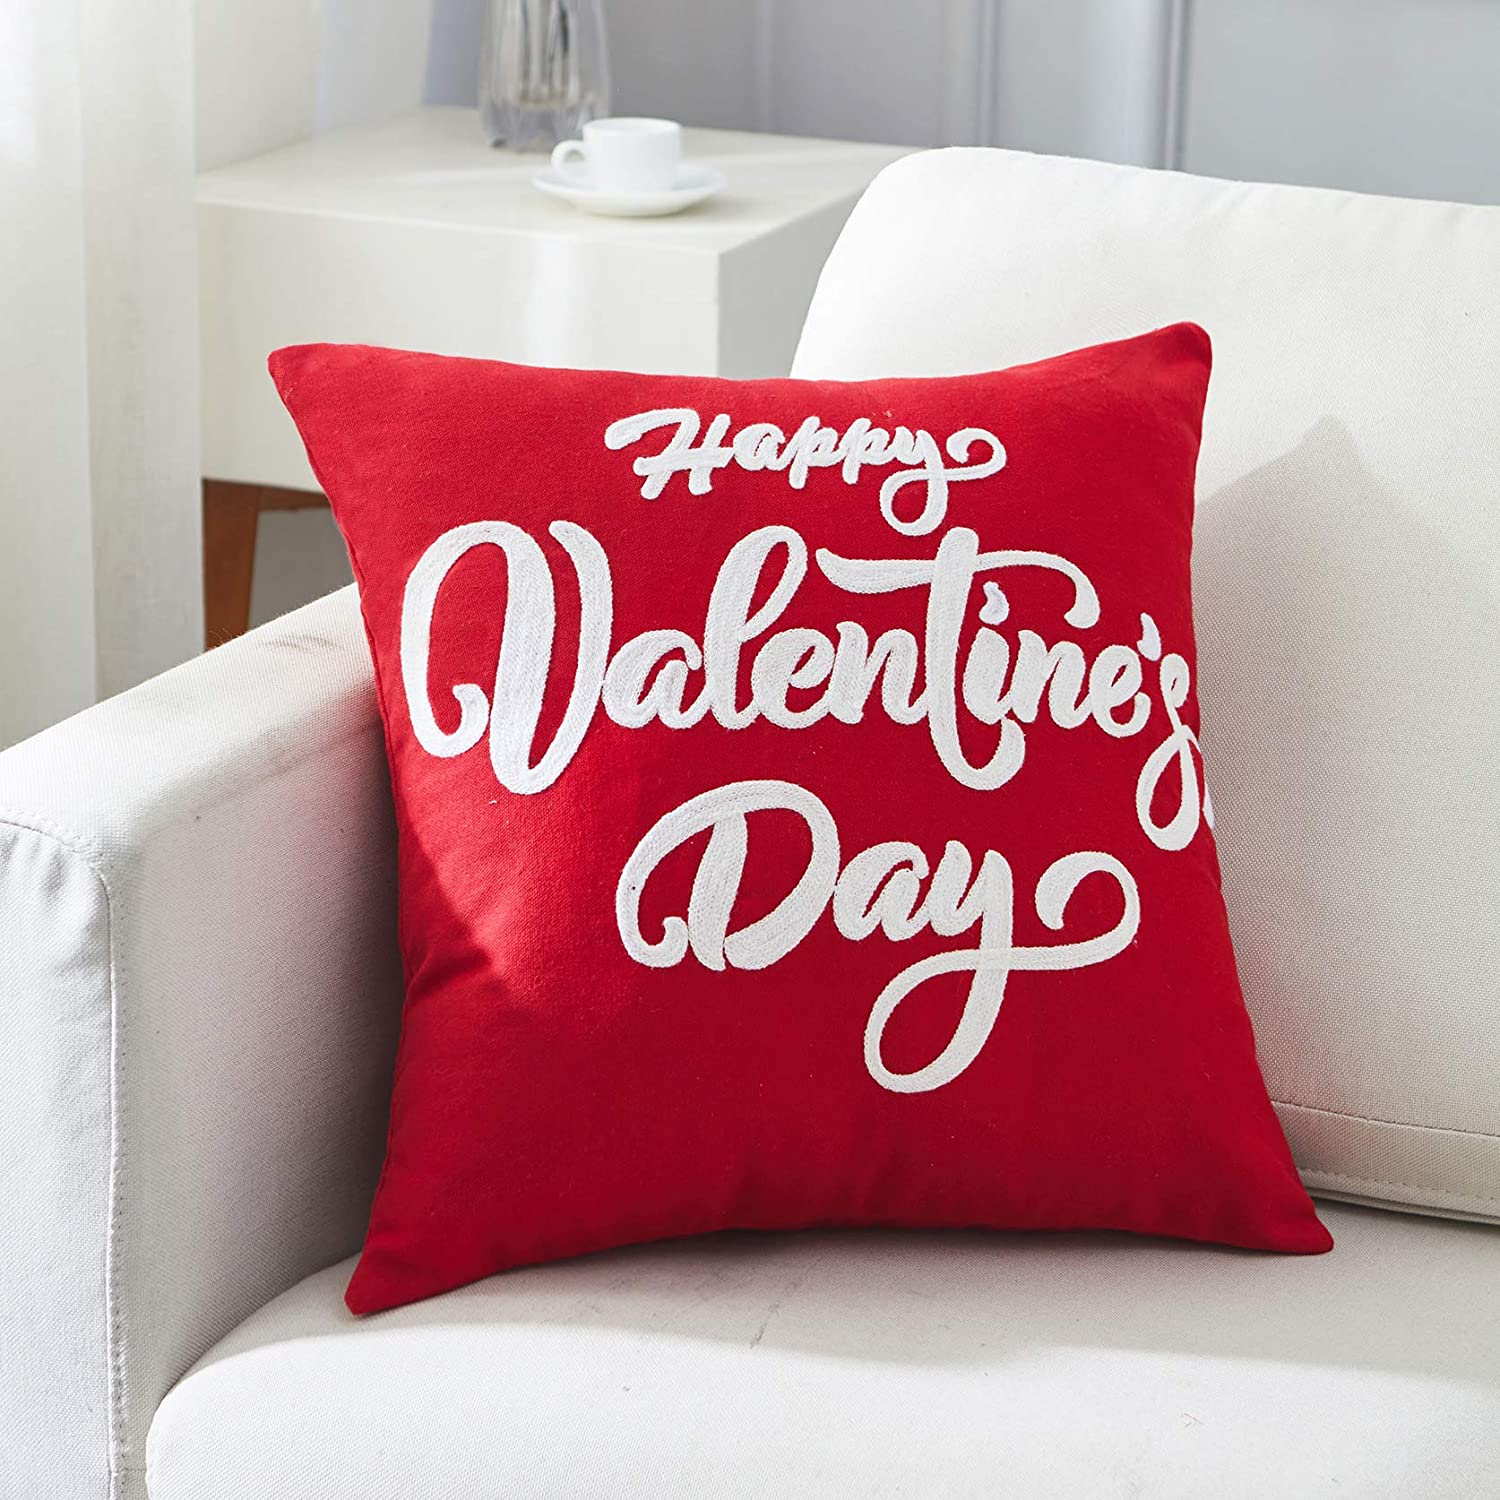 Amazon Com Happy Valentine S Day Decorations Throw Pillow Case Cushion Cover 18x18 Inch Chain Embroidery Letters Pattern Gifts For Valentine S Day Home Kitchen